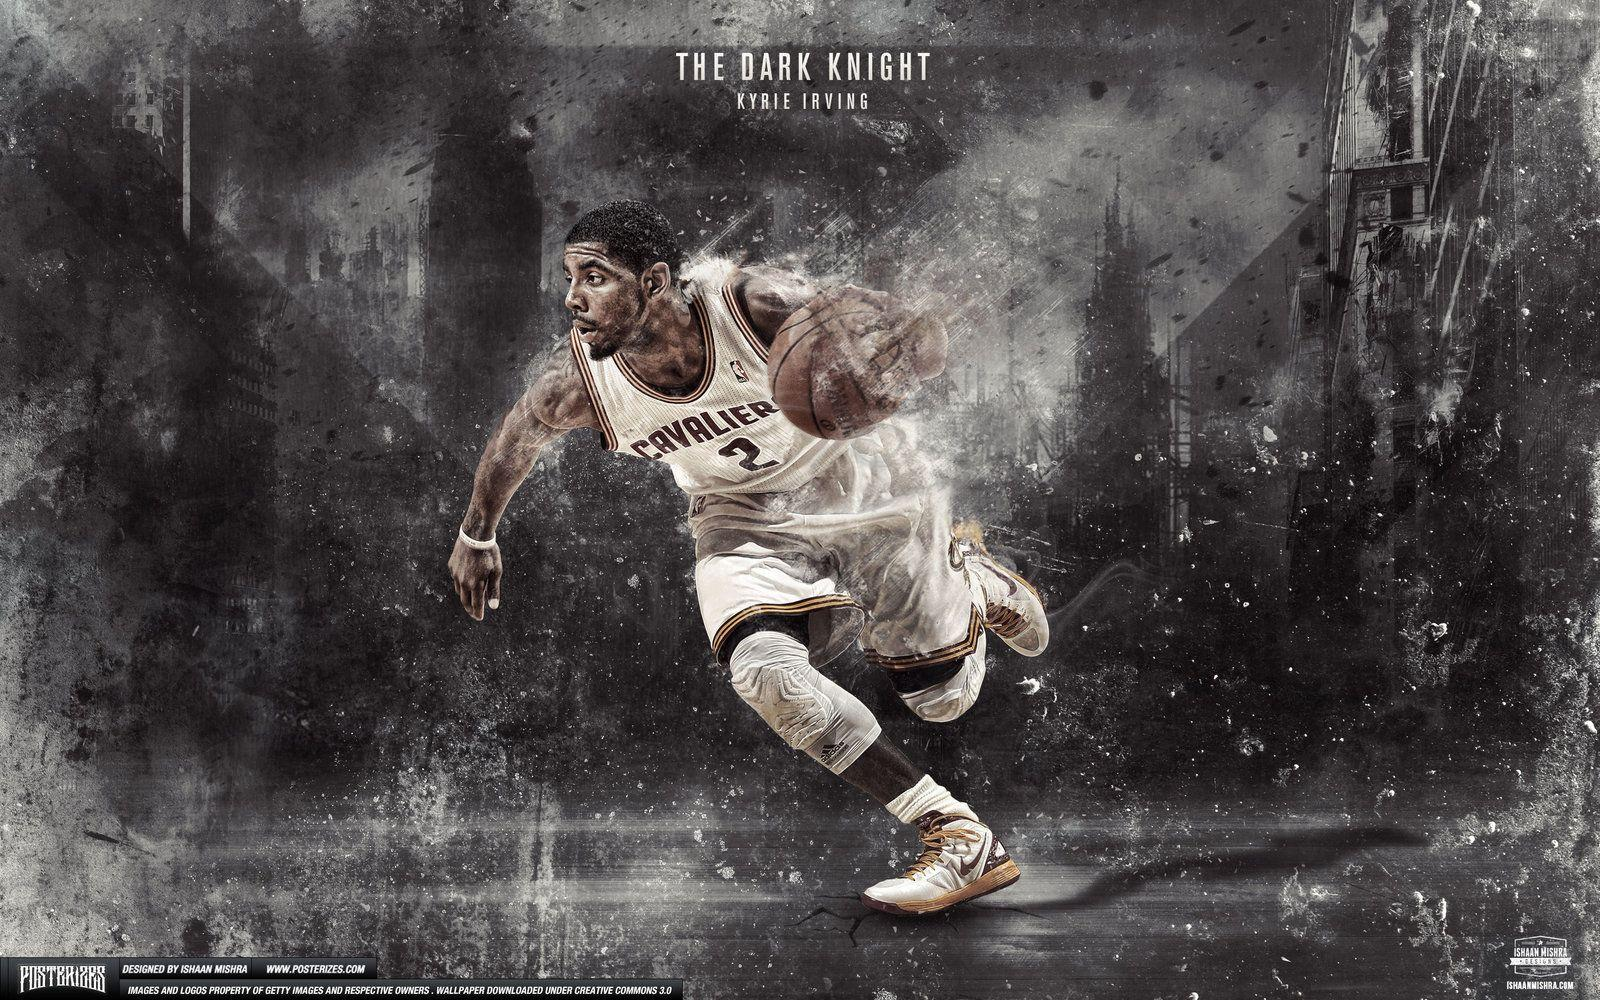 Knight Basketball Player Wallpaper: Cleveland Cavaliers Basketball Wallpapers